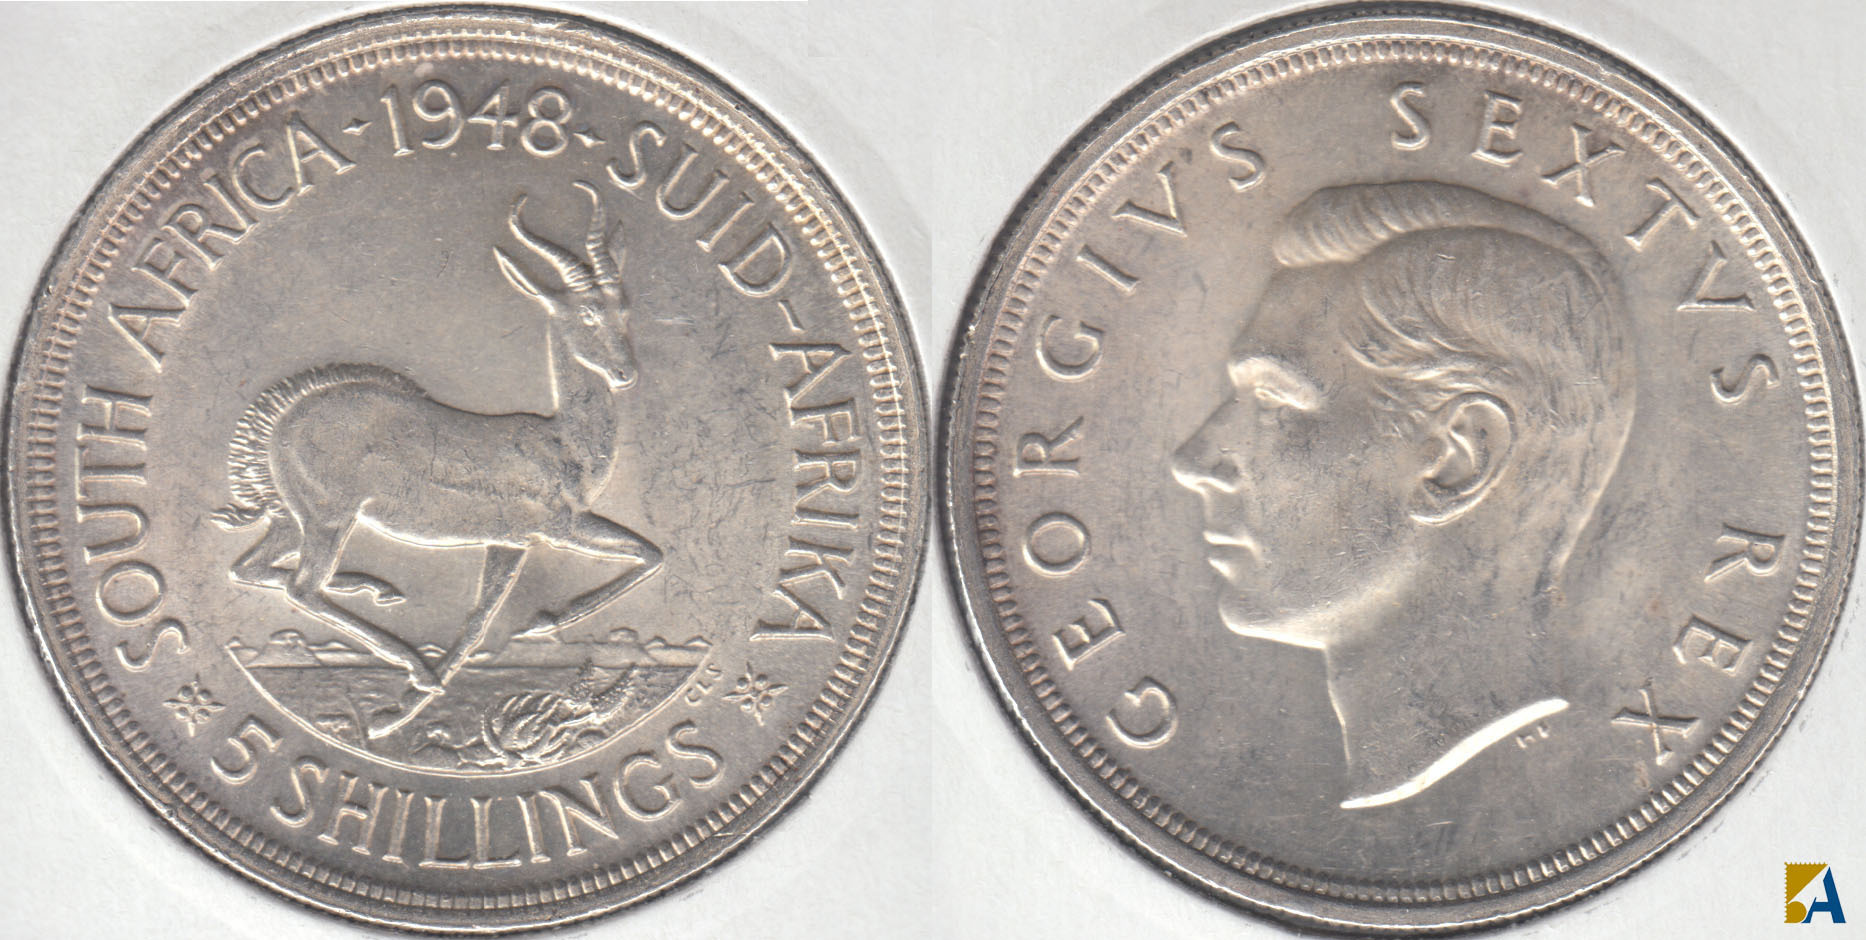 SUDAFRICA - SOUTH AFRICA. 5 SHILLINGS DE 1948. PLATA 0.800. (5)